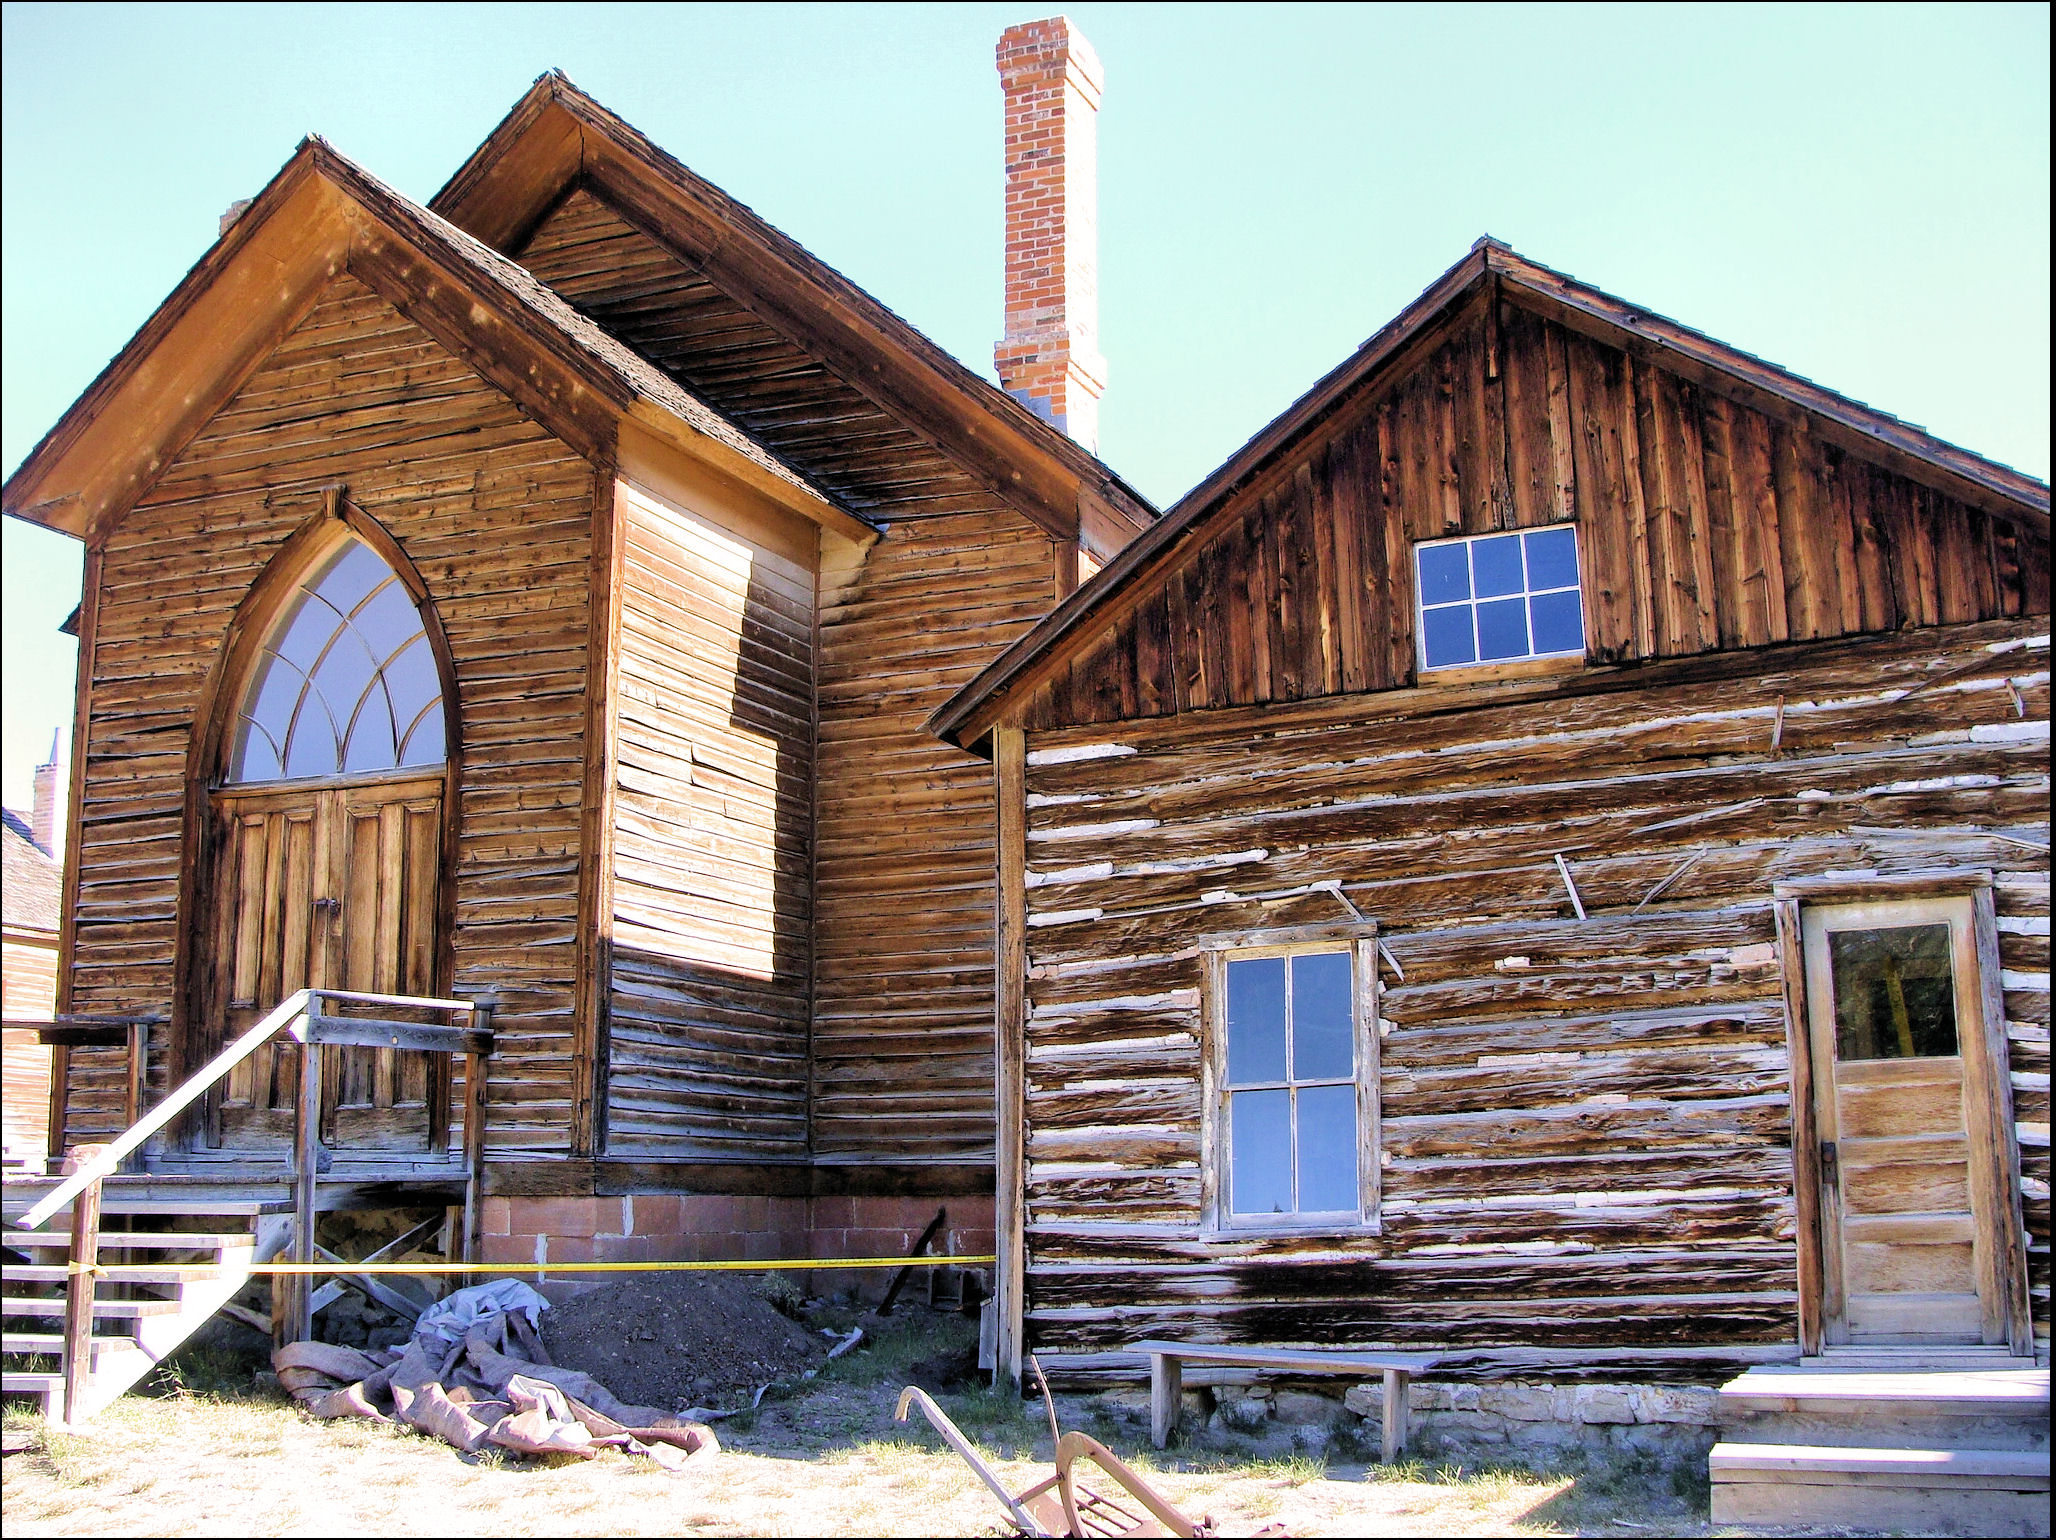 The Methodist Church in Bannack, Montana